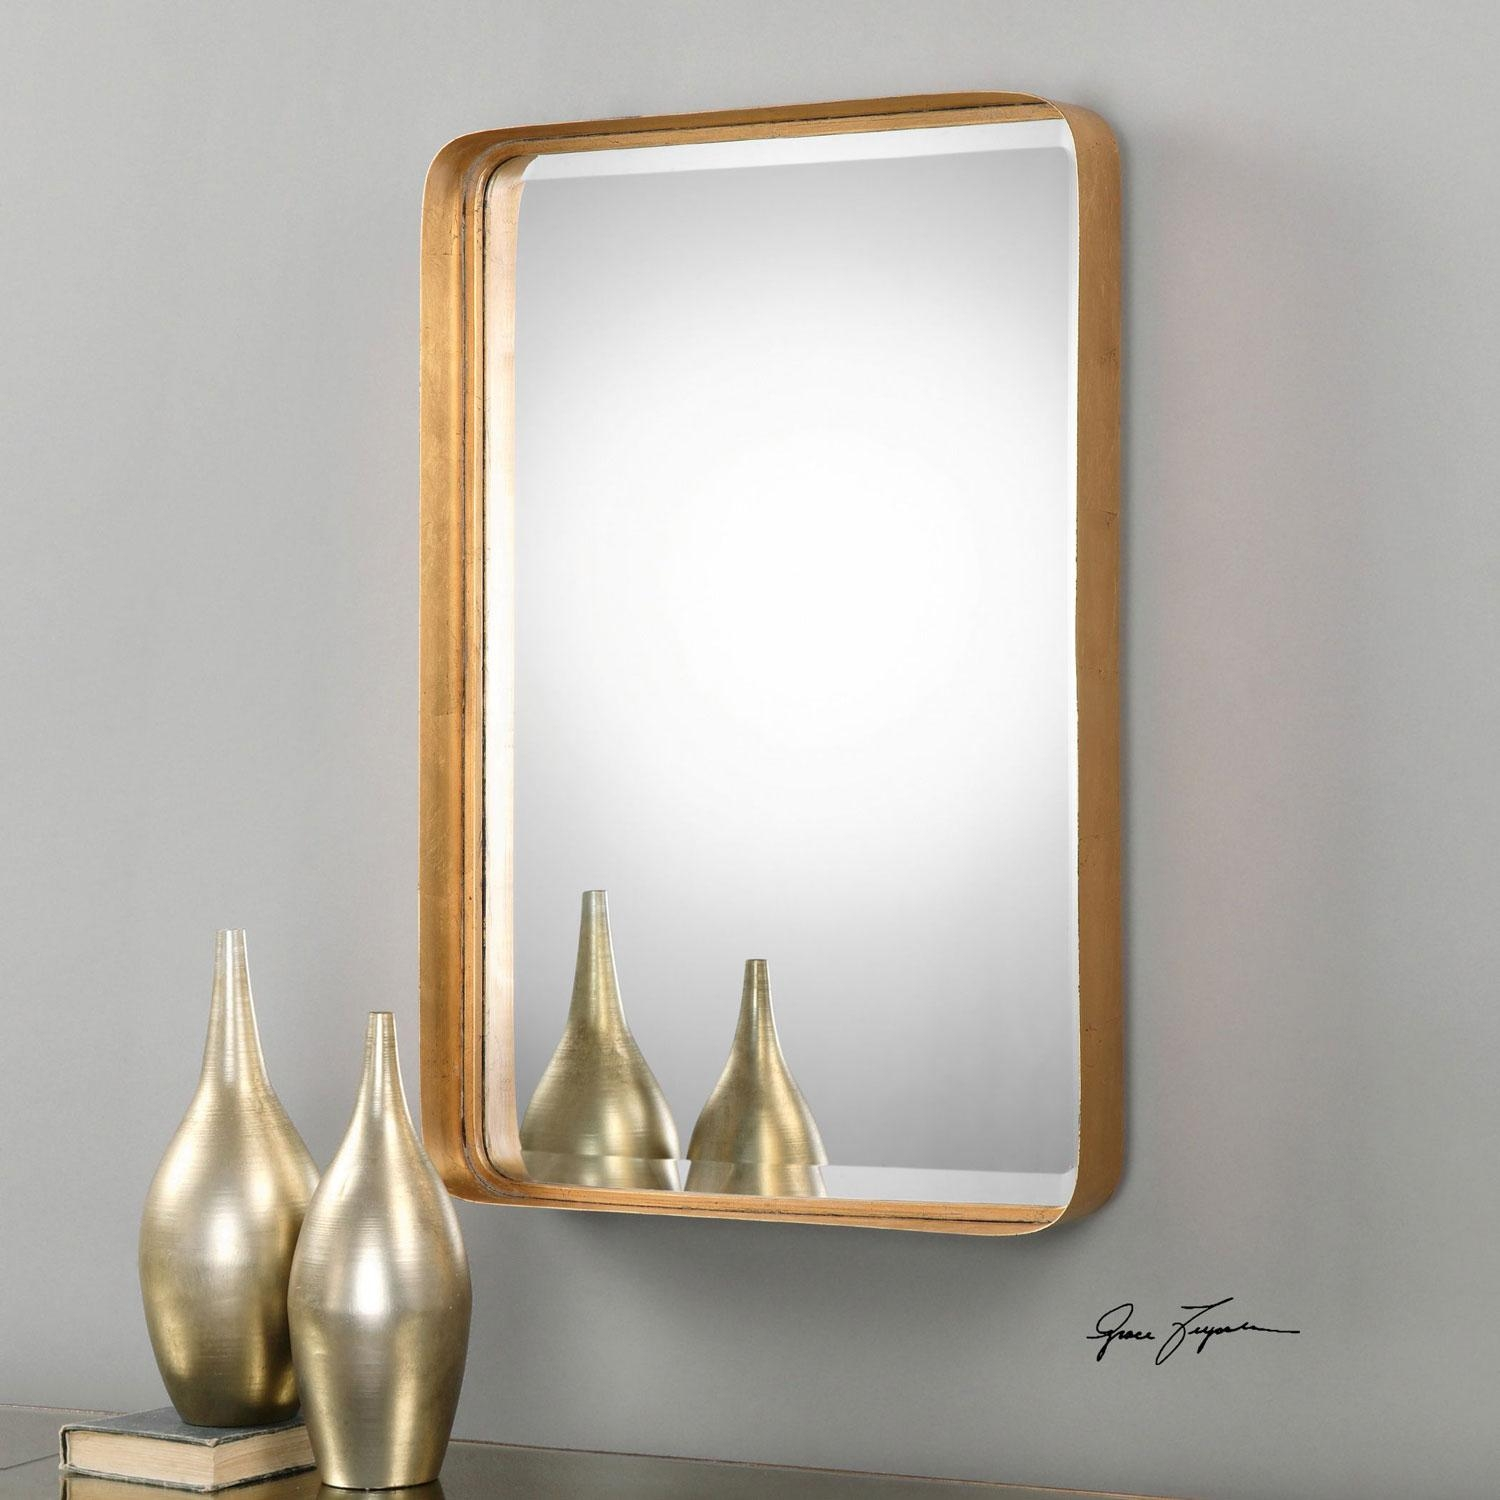 Crofton Antique Gold Mirror Uttermost Wall Mirror Mirrors Home Decor With Regard To Gold Antique Mirror (View 11 of 20)